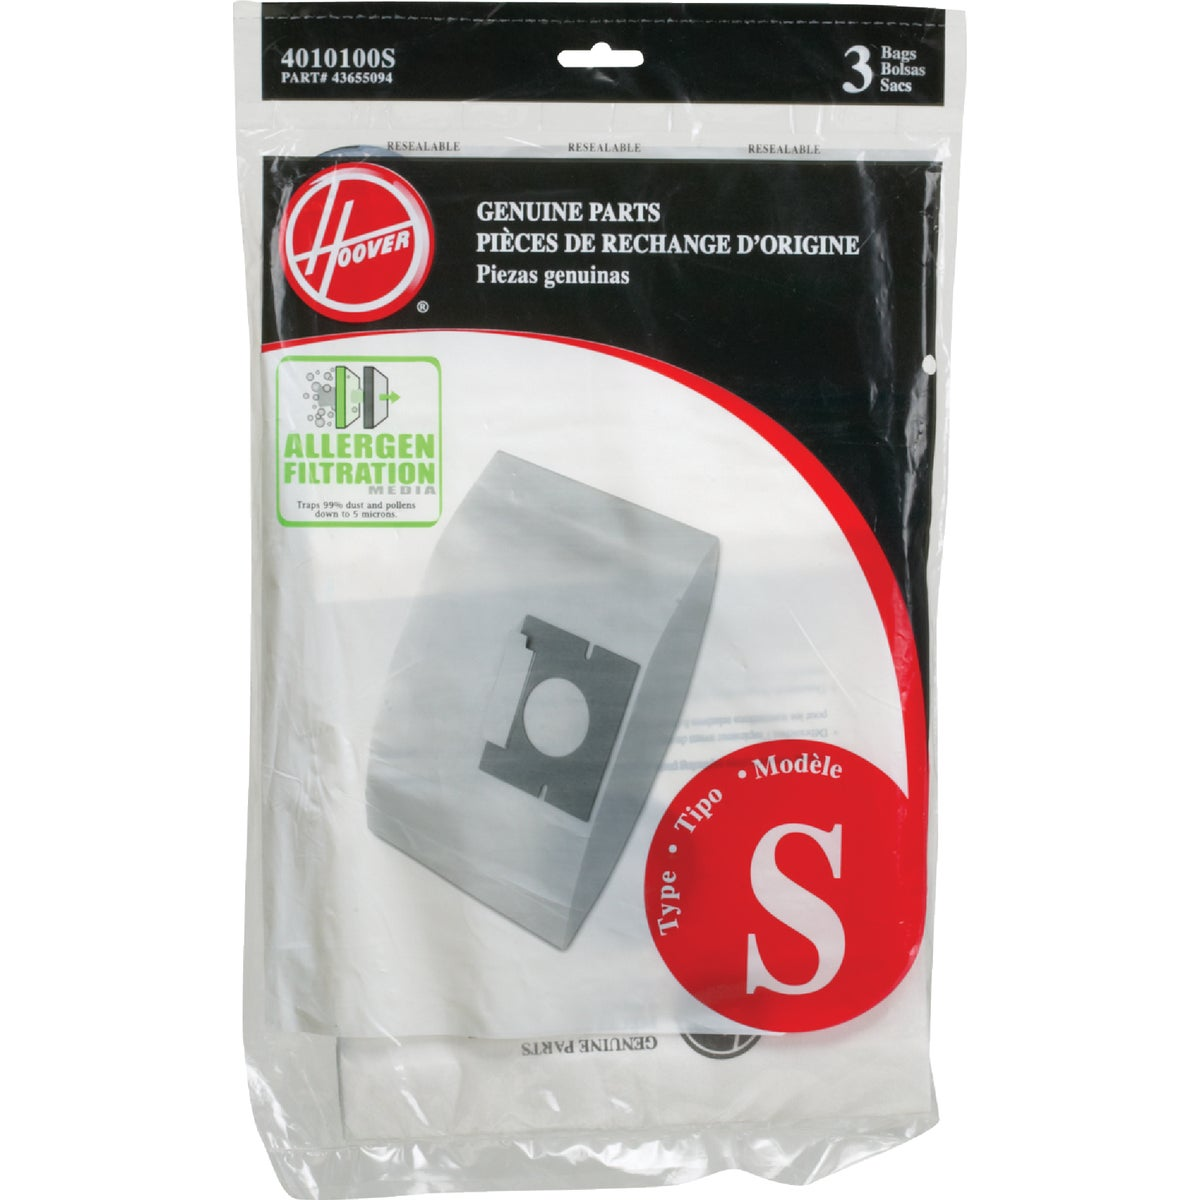 FILTRATION VACUUM BAG - 4010100S by Hoover Co